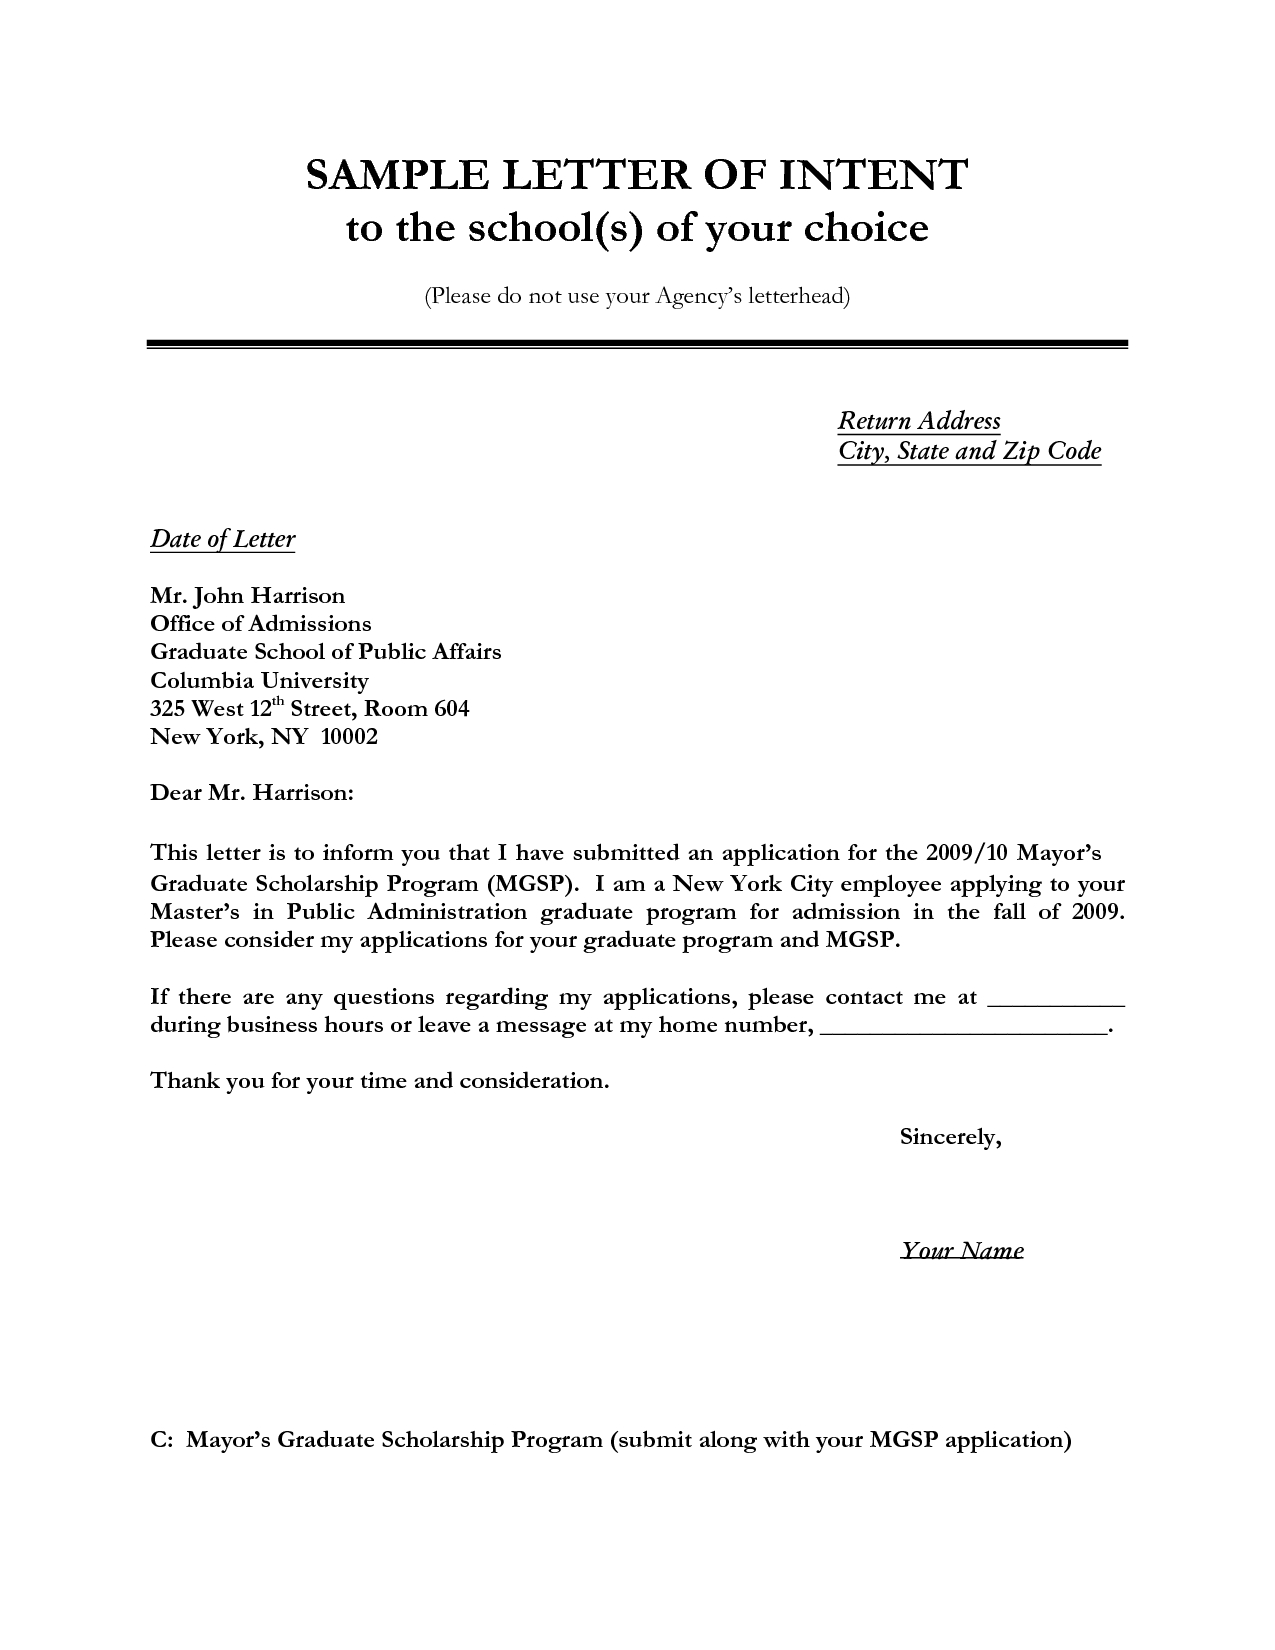 constructive eviction letter template Collection-Letter of intent sample 4-j